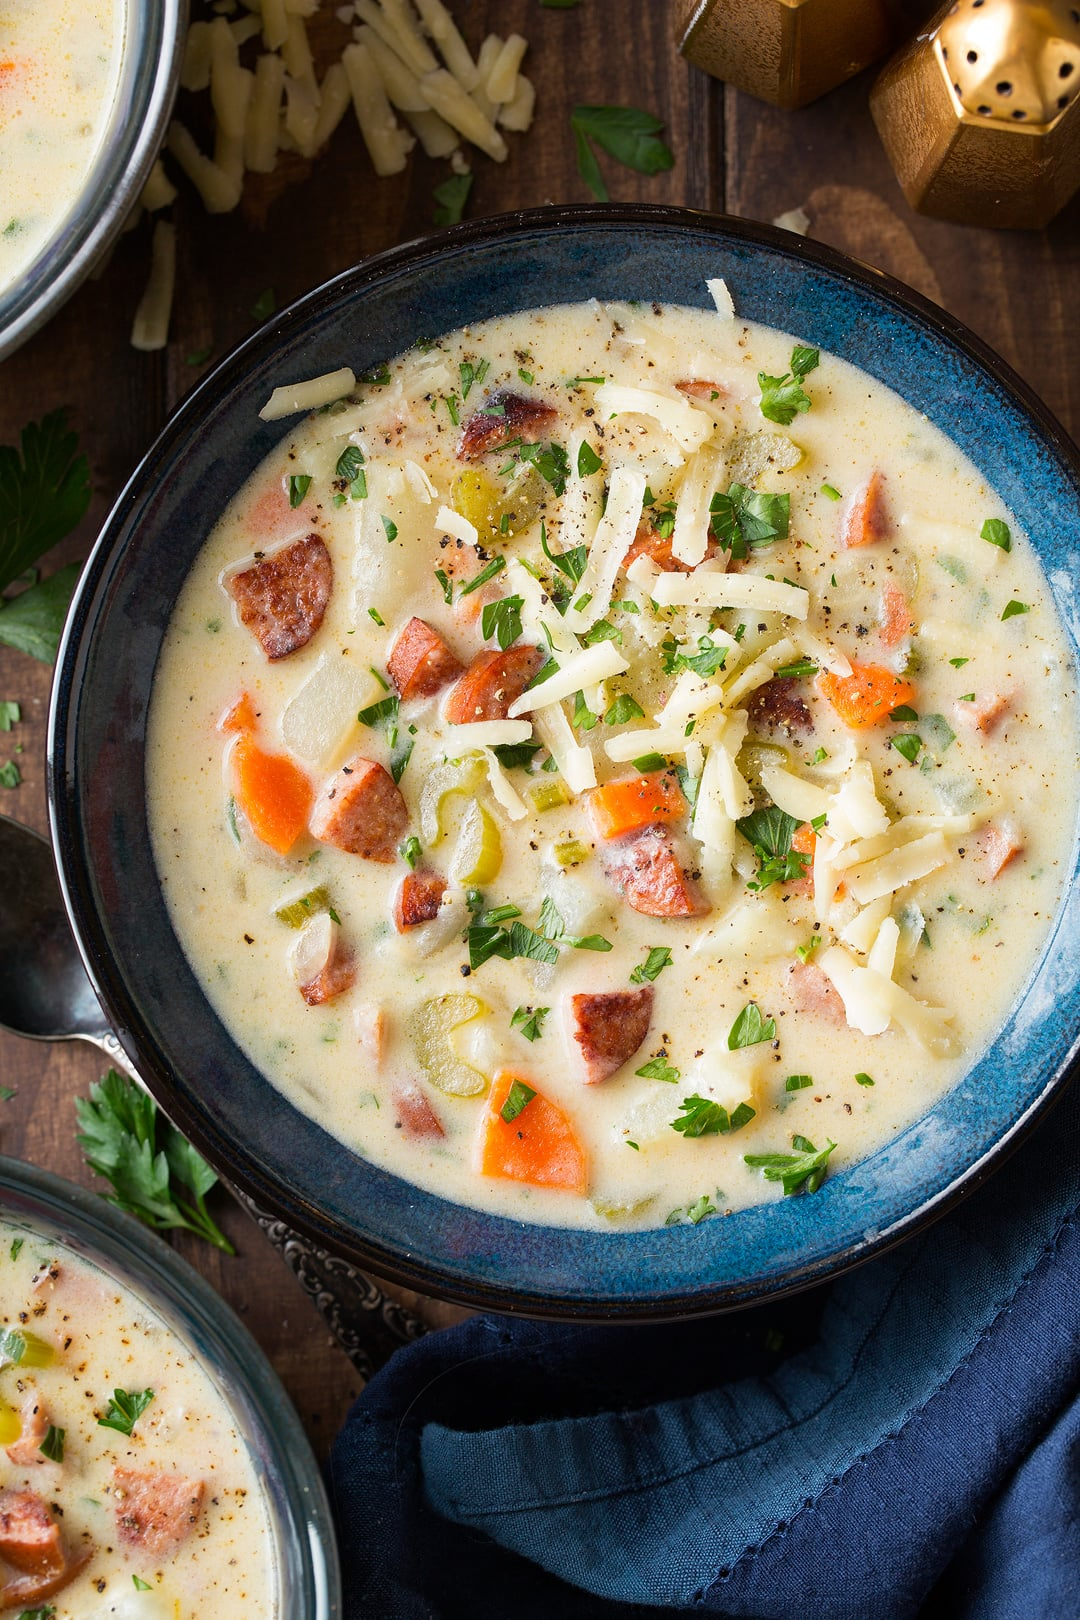 Creamy Potato Kielbasa and White Cheddar Soup